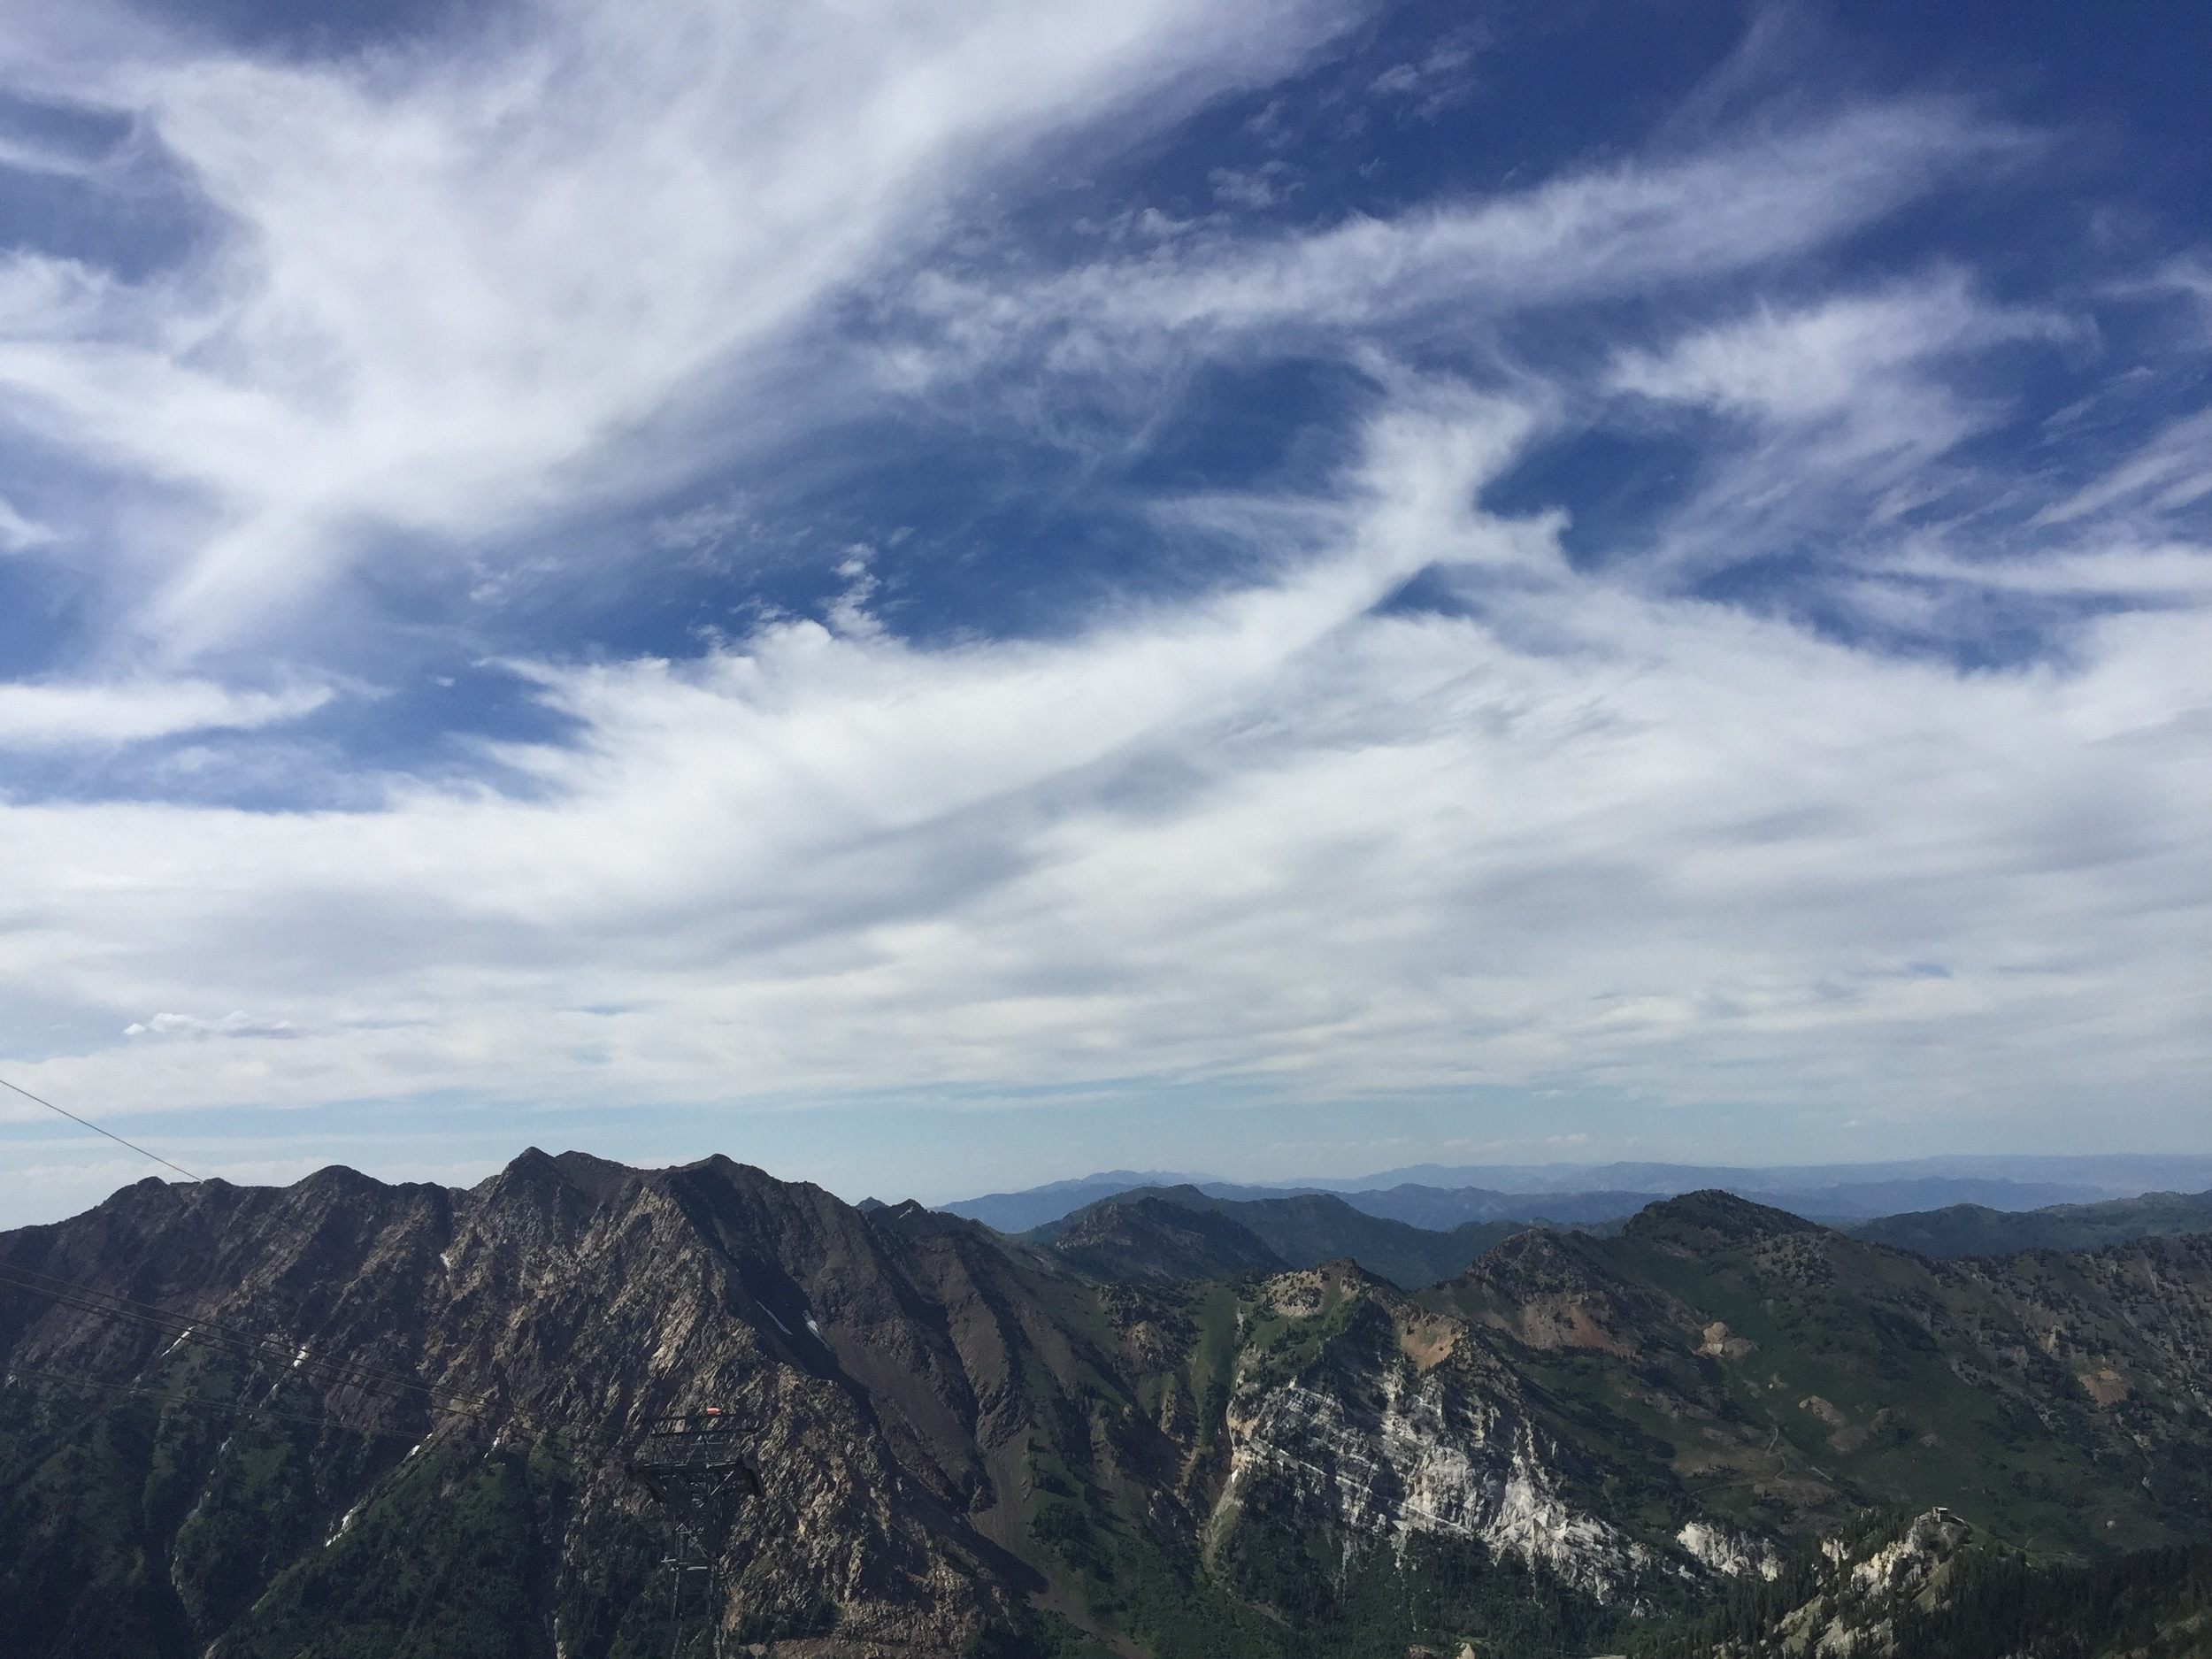 The view from the top of the tram at Snowbird.